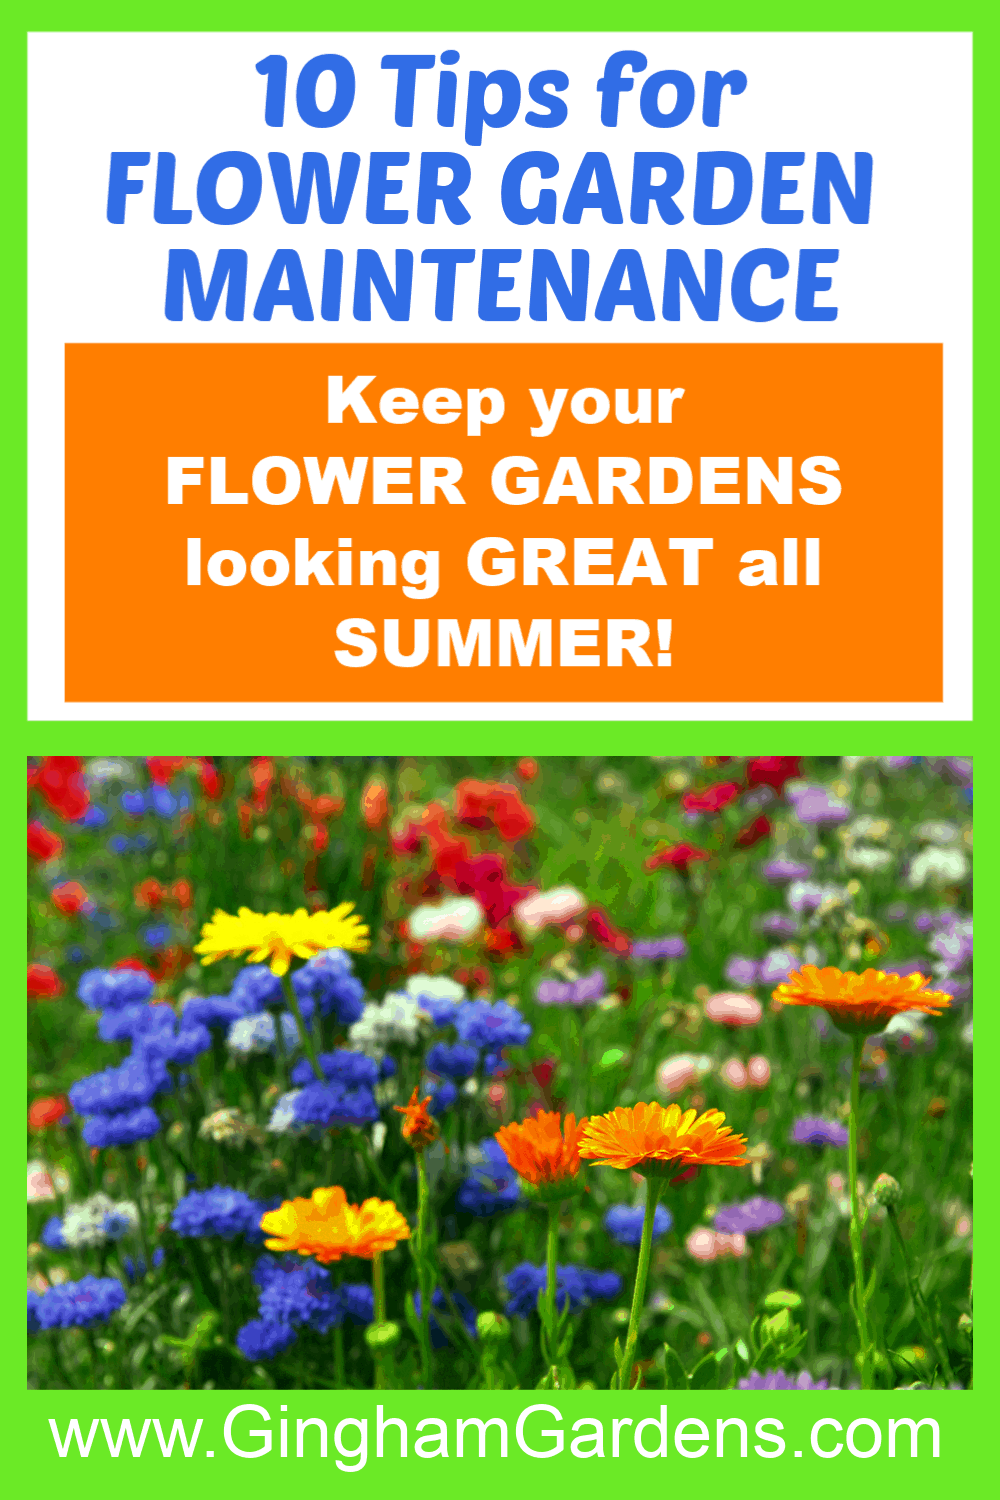 Image of Flowers with Text Overlay - 10 Tips for Flower Garden Maintenance